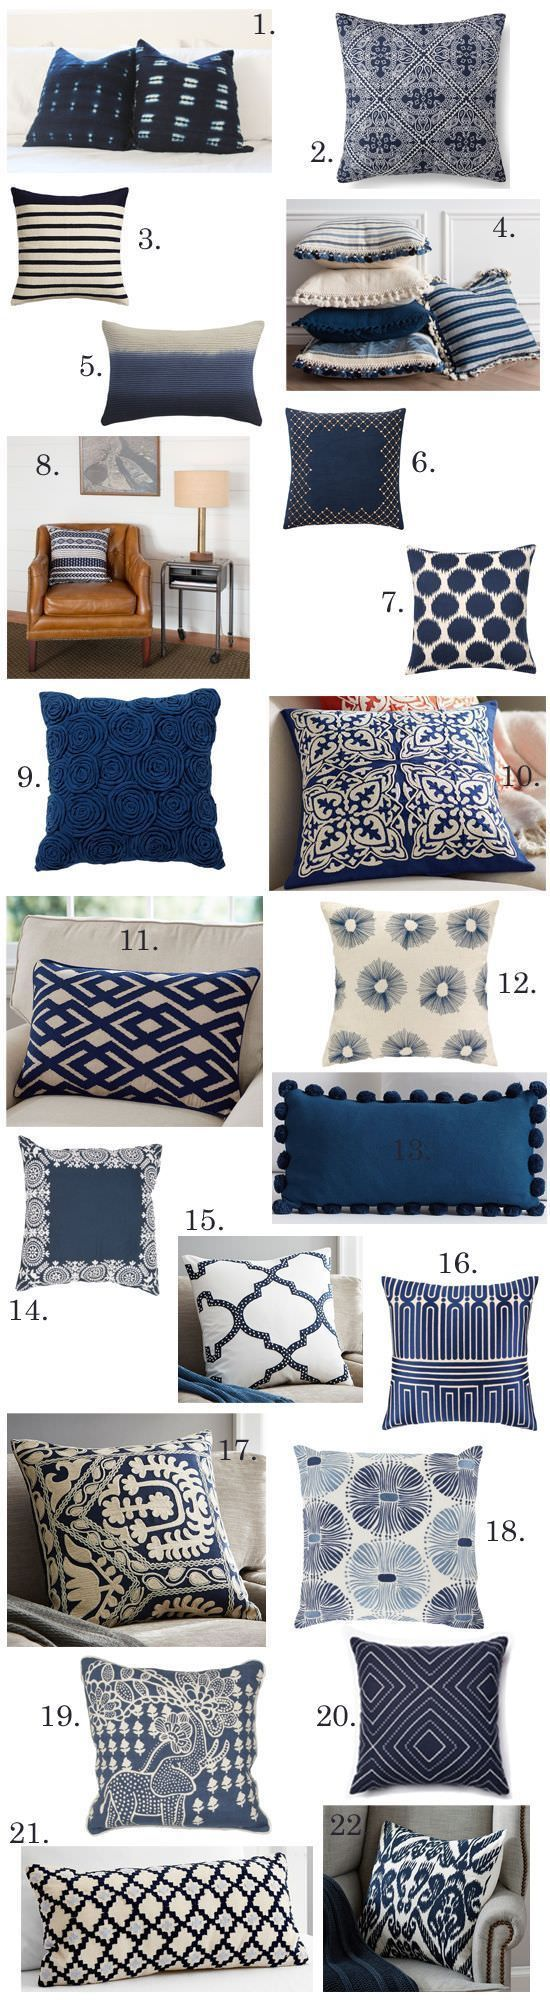 7 Dazzling Colors That Go With Navy Blue Living Room Decor Brown Couch Bedroom Makeover Blue Living Room